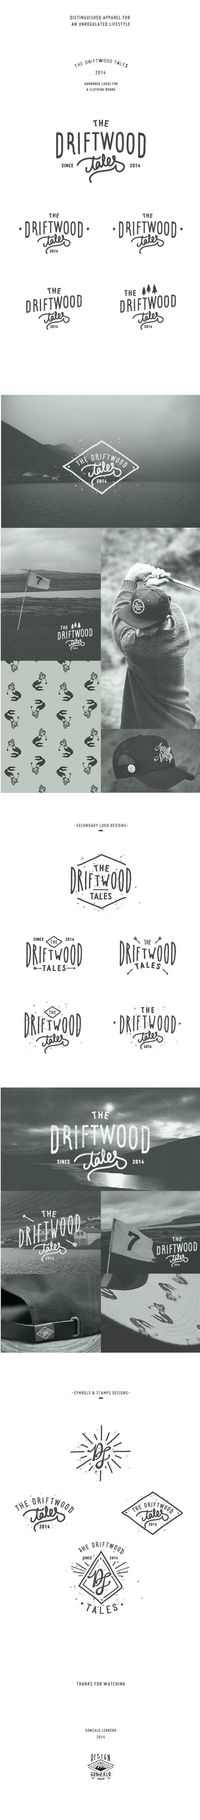 The Driftwood Tales by Gonzalo Lebrero